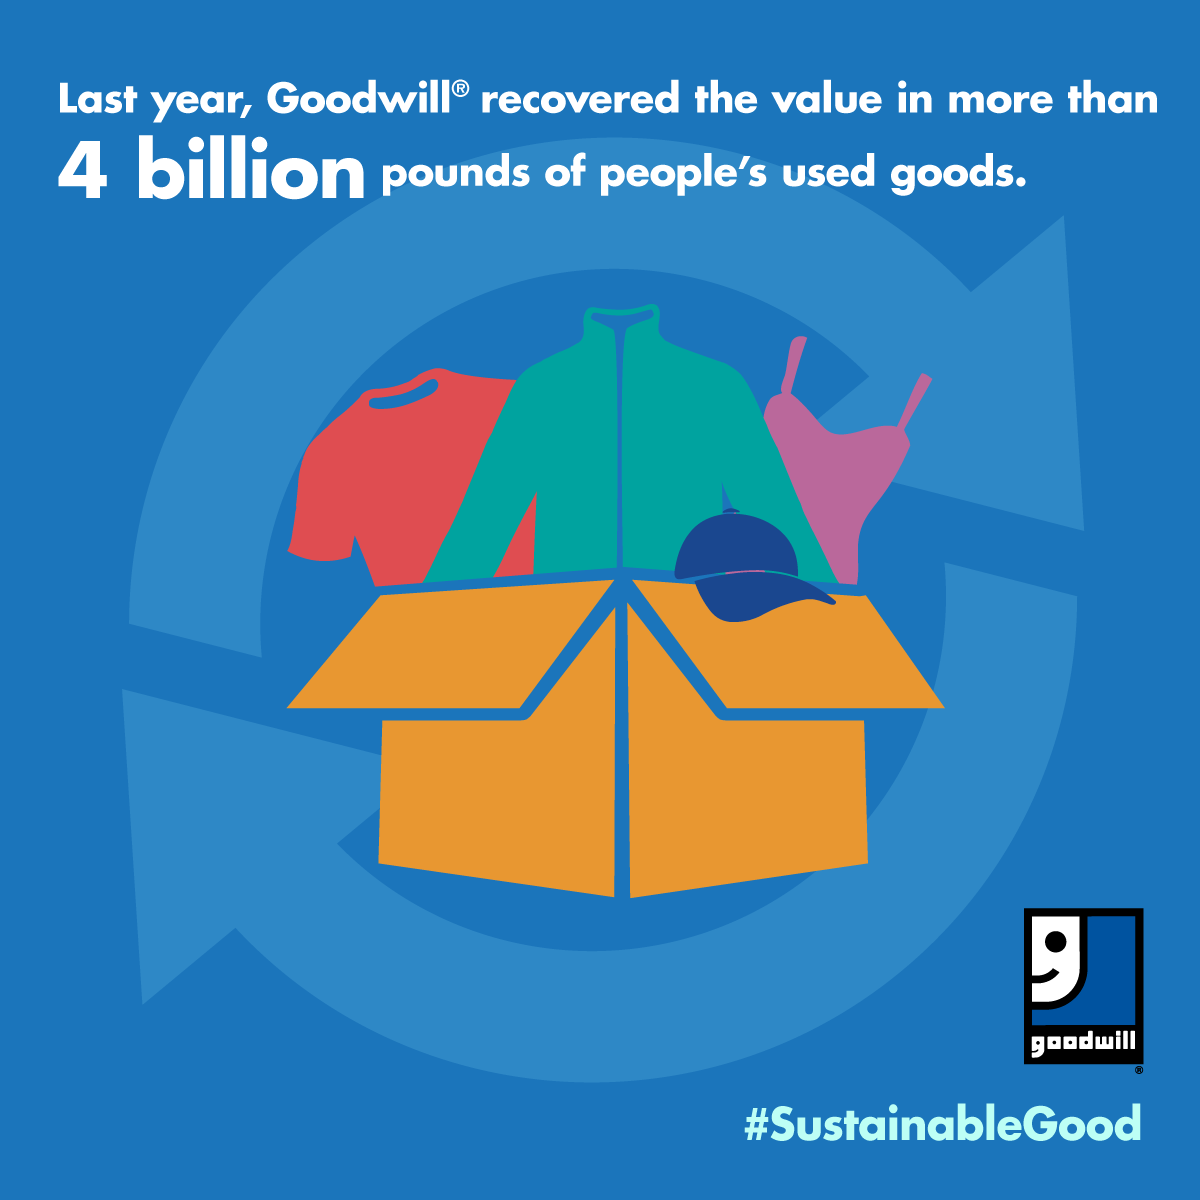 Last year, Goodwill recovered the value in more than 4 billion pounds of people's used goods.